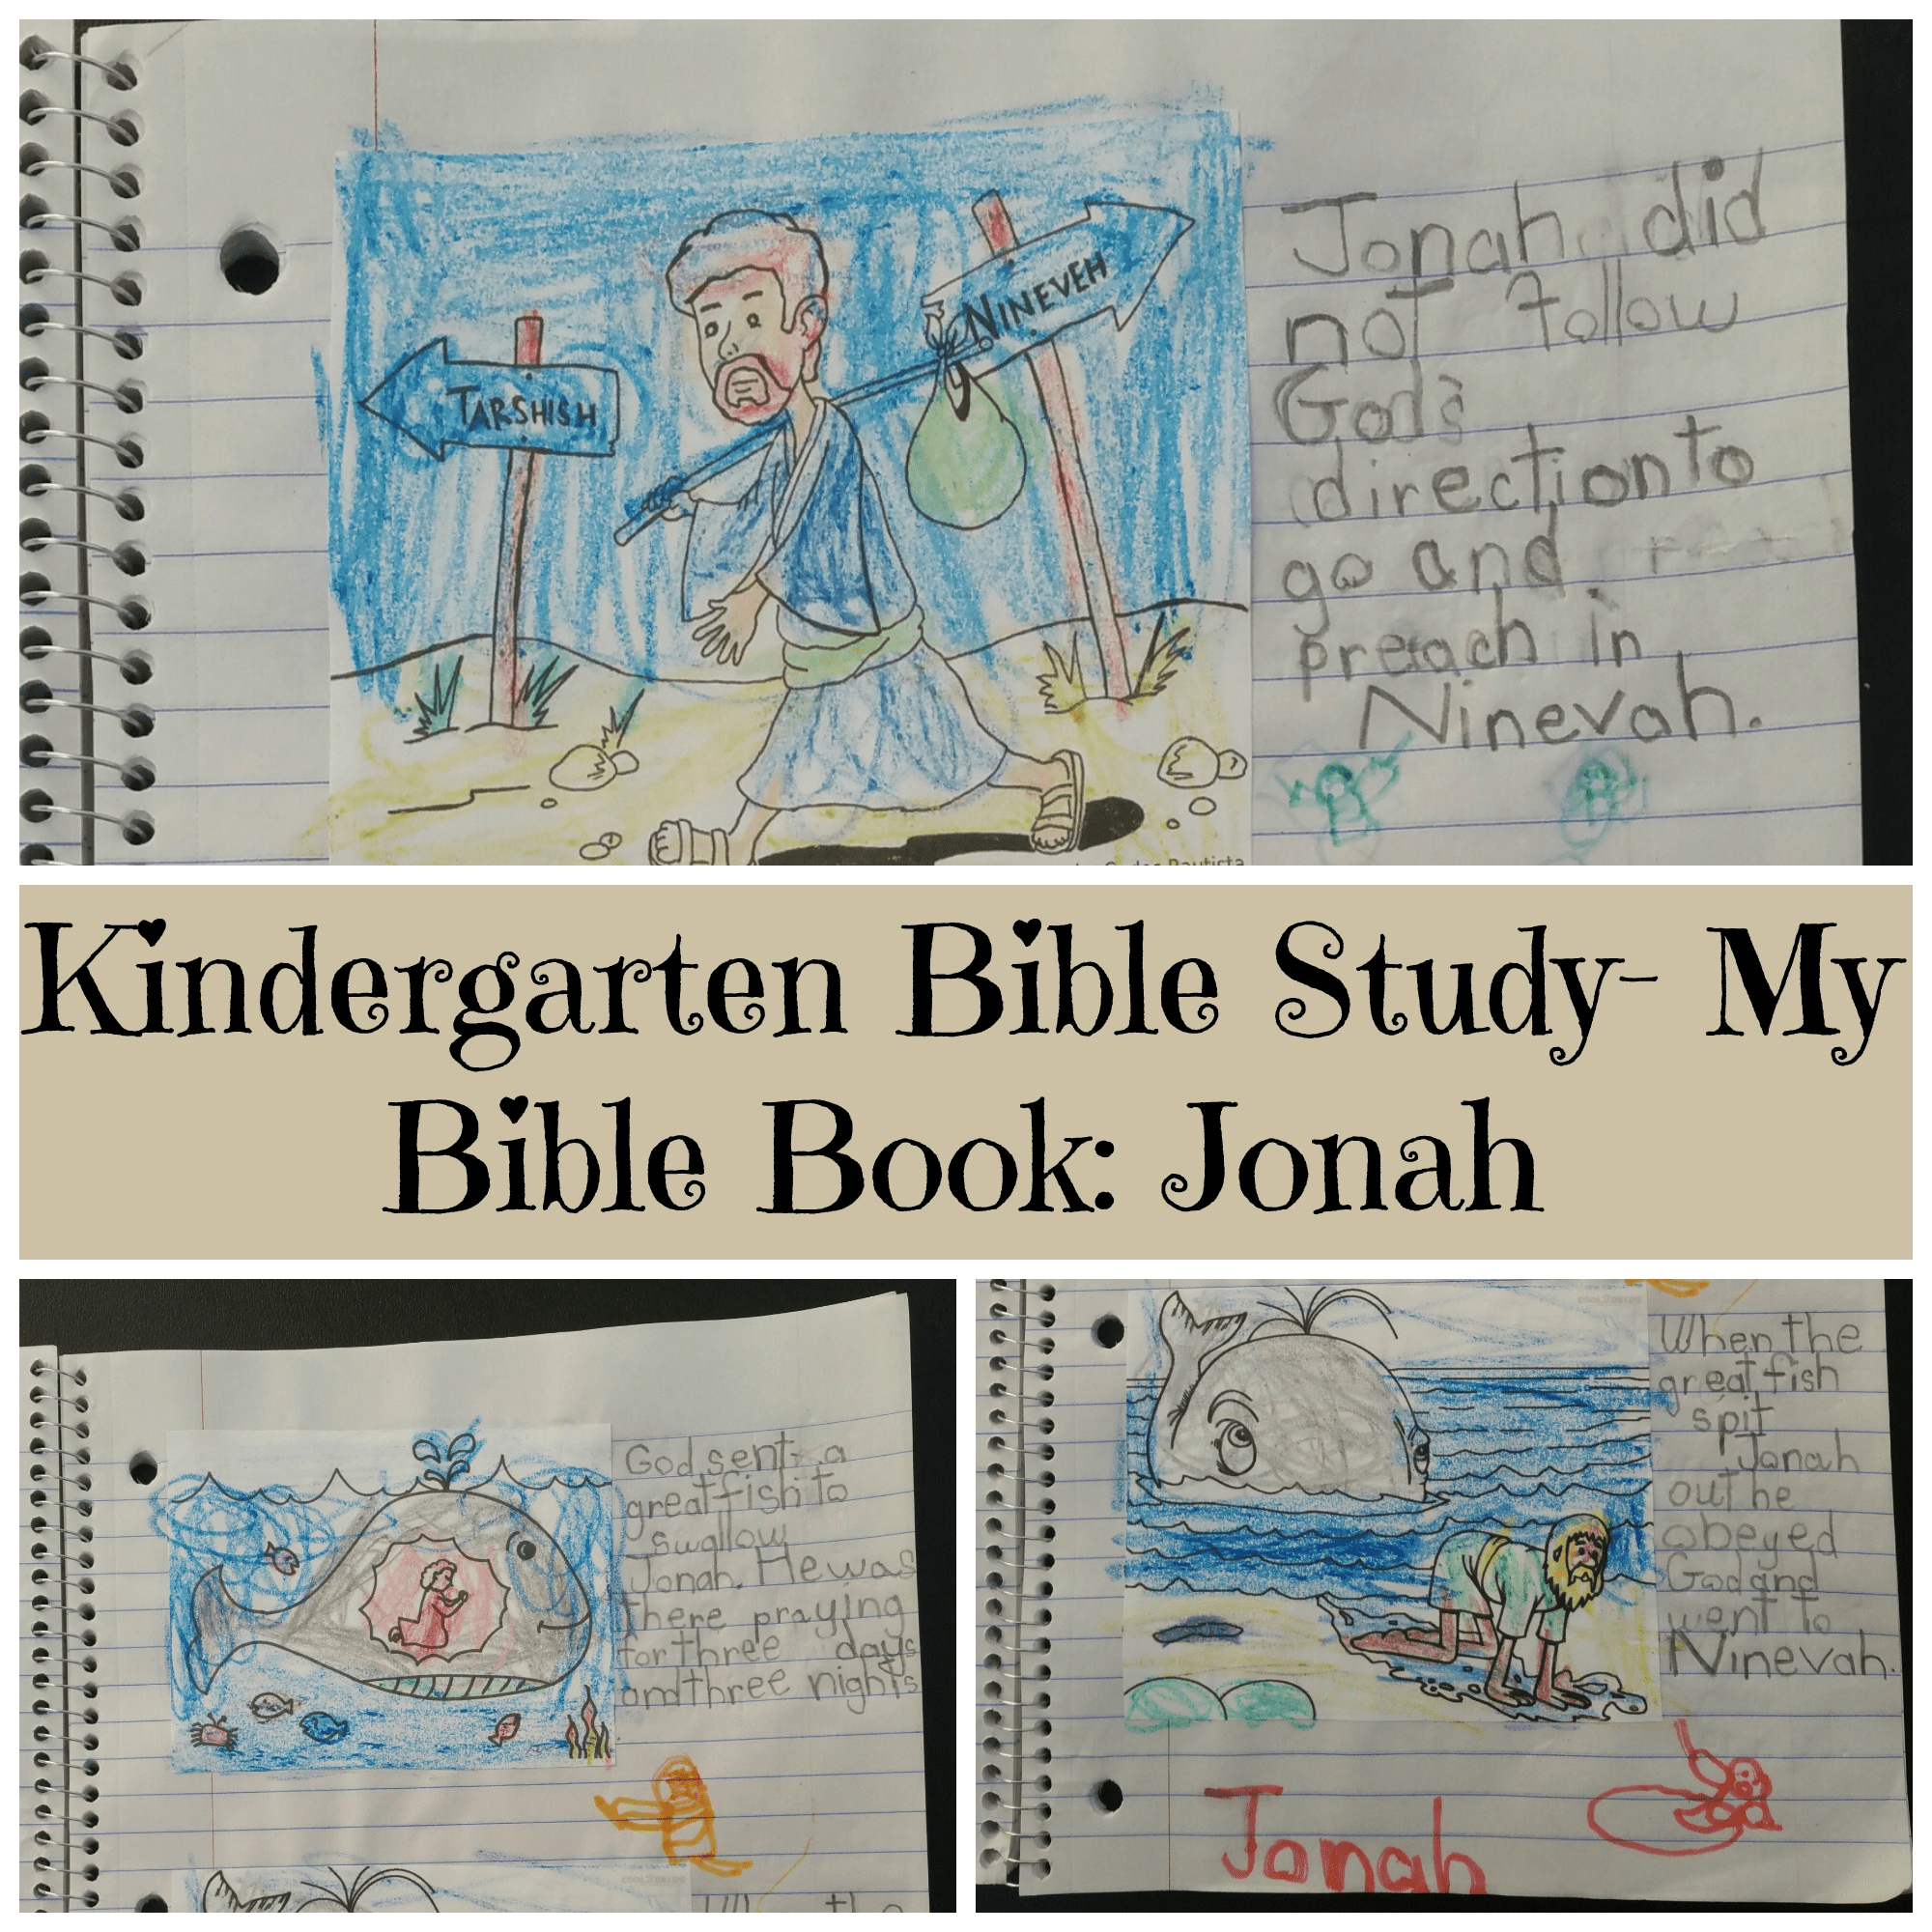 Kindergarten Bible Study- My Bible Book: Jonah